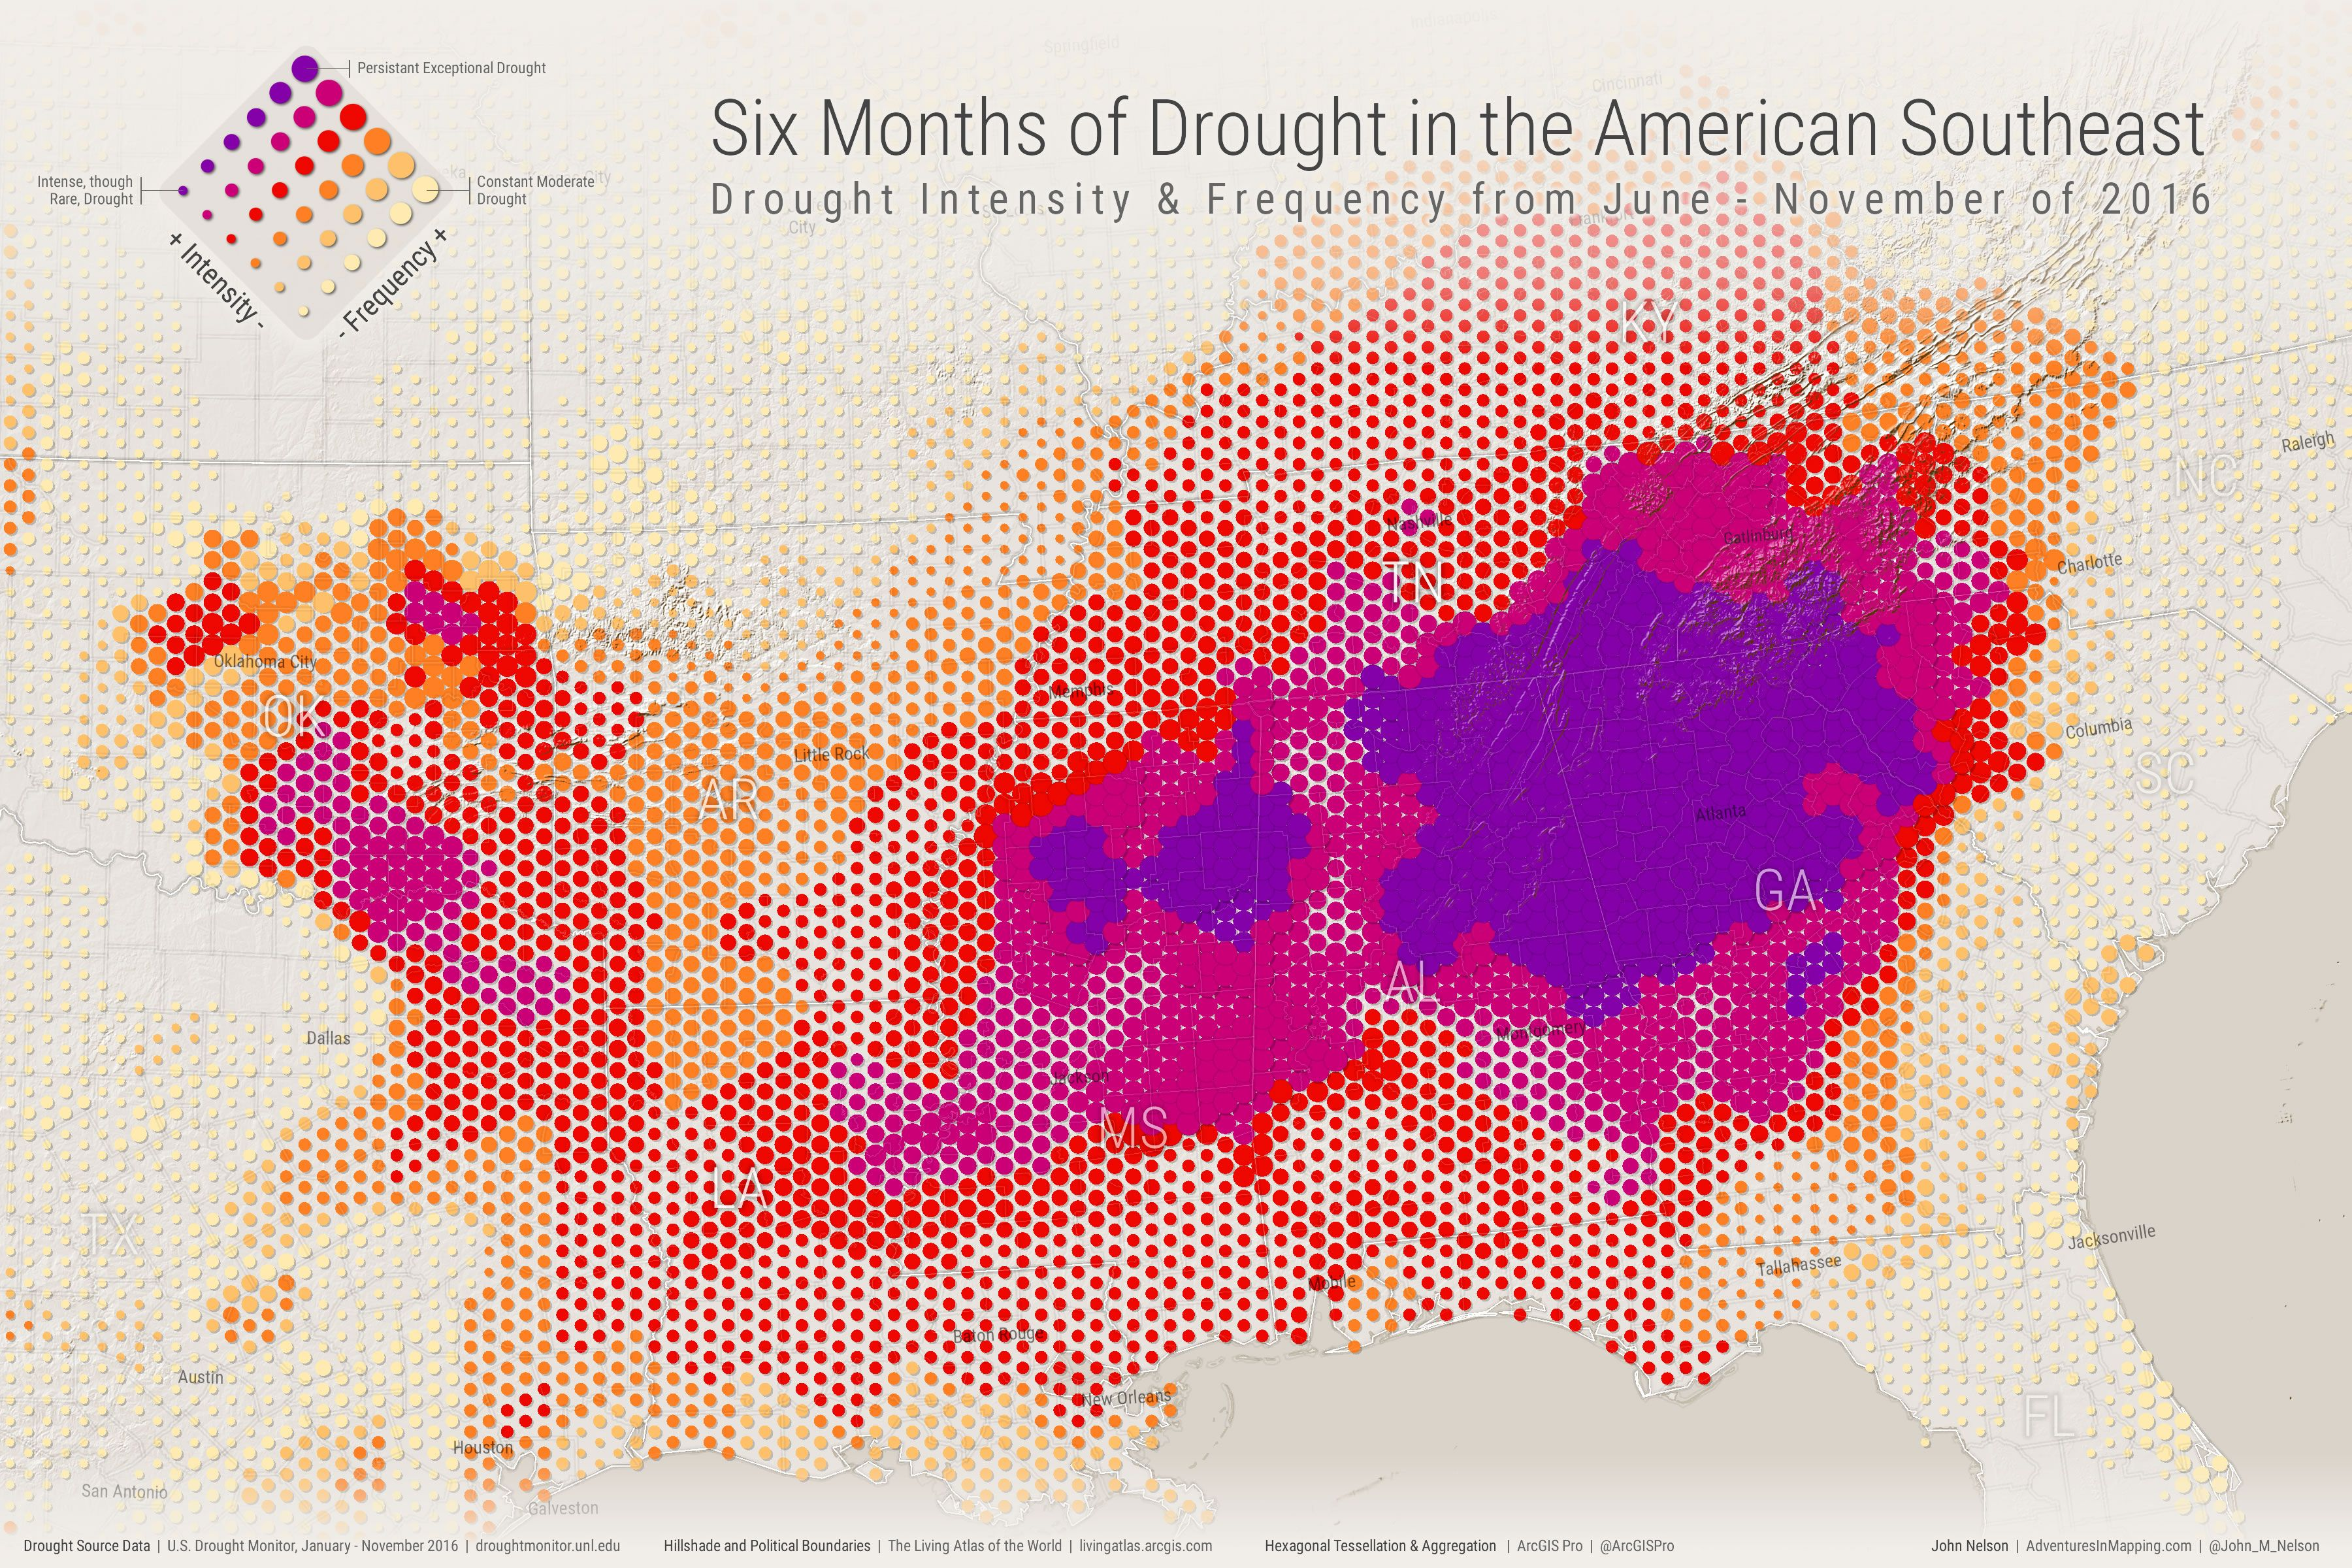 Six Months of Drought in the American